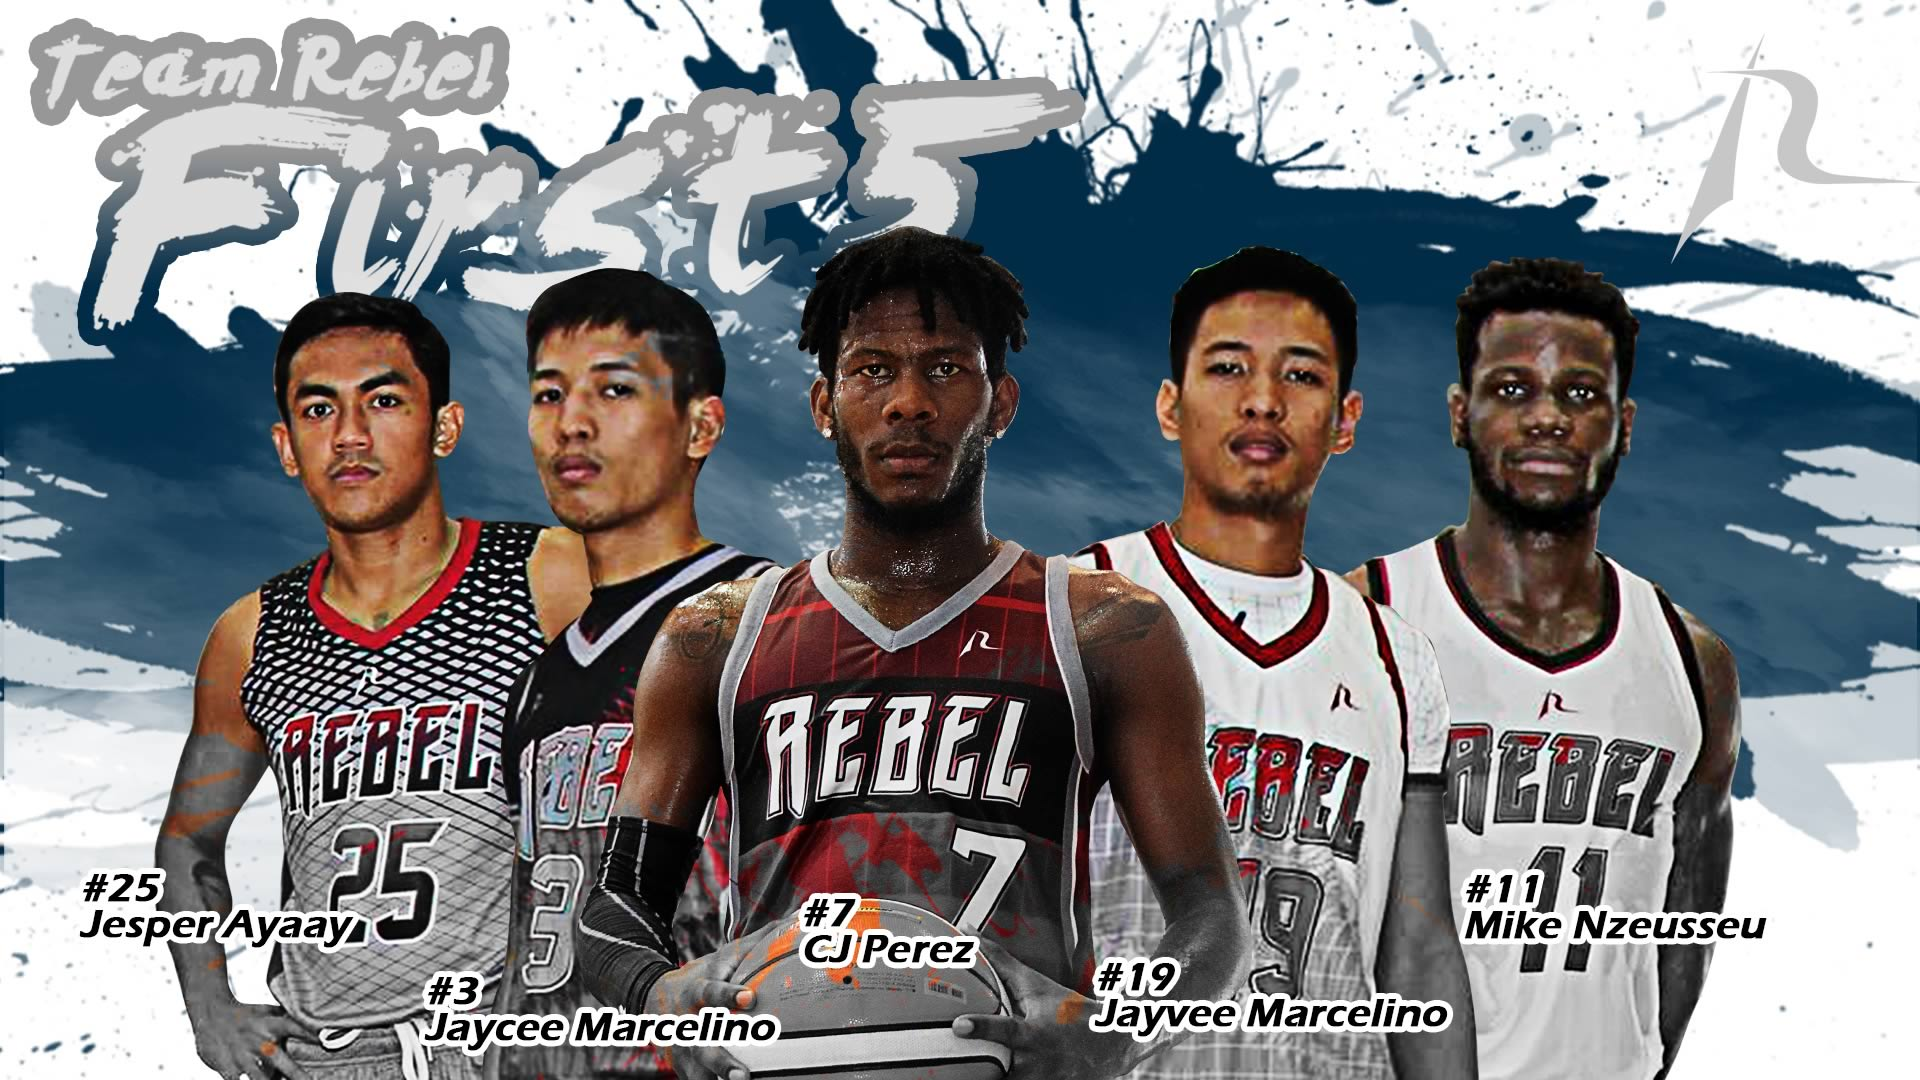 b39a9da90 We Are Rebel - Official website of Team Rebel Sports Pilipinas